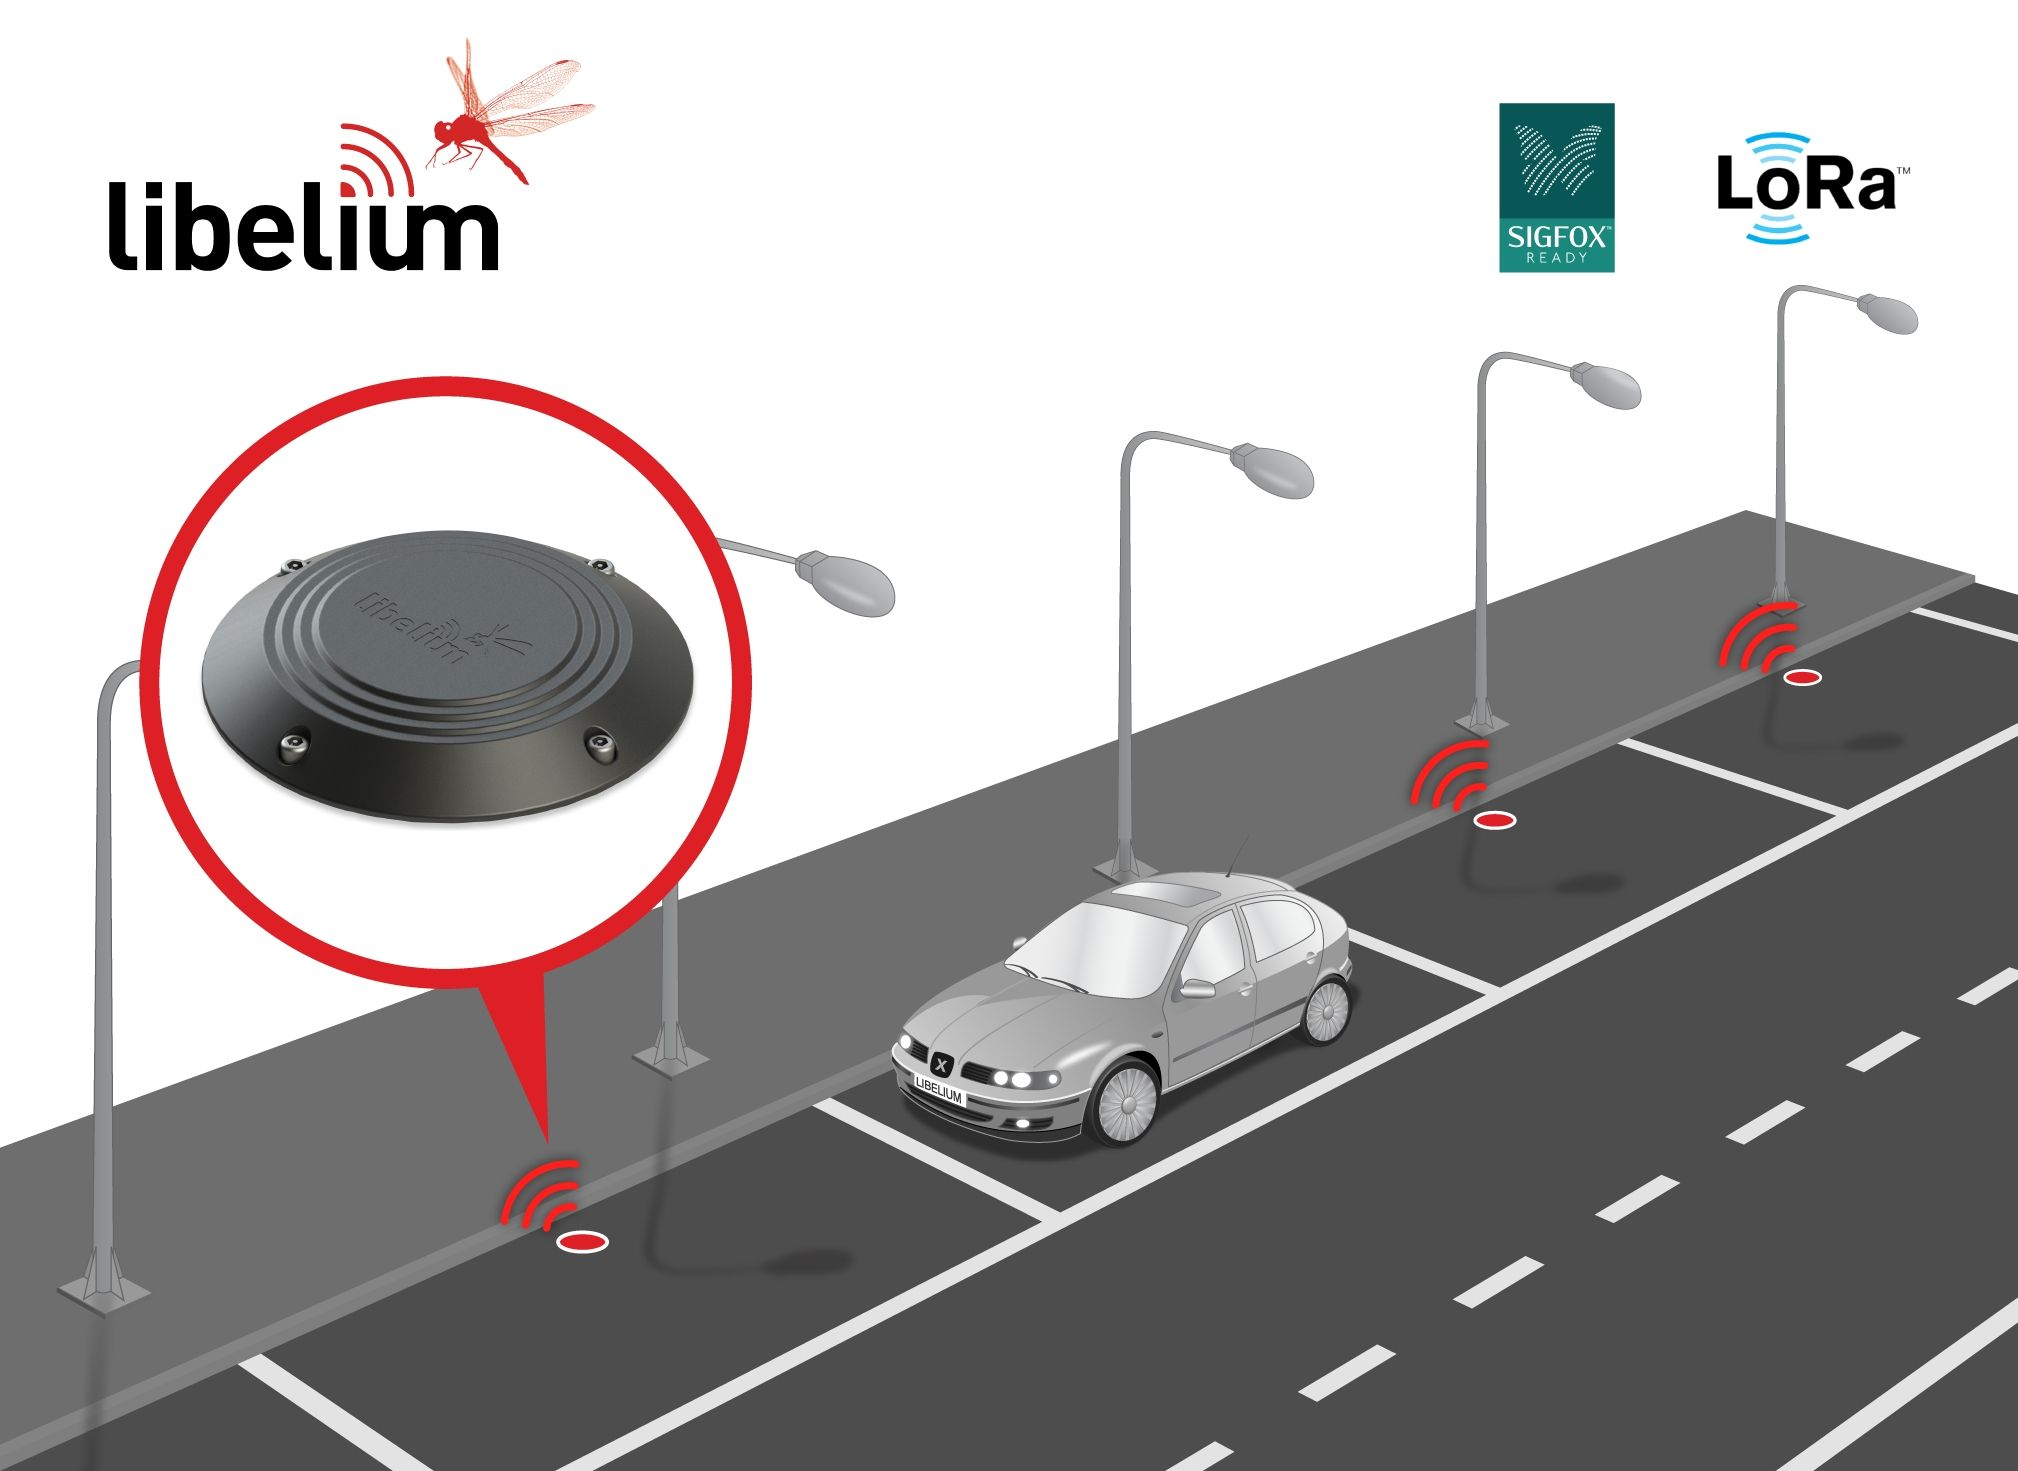 New Smart Parking Solution By Libelium With Double Radio Lorawan Sigfox Photo Business Wire Parking Solutions Parking Design Home Security Camera Systems